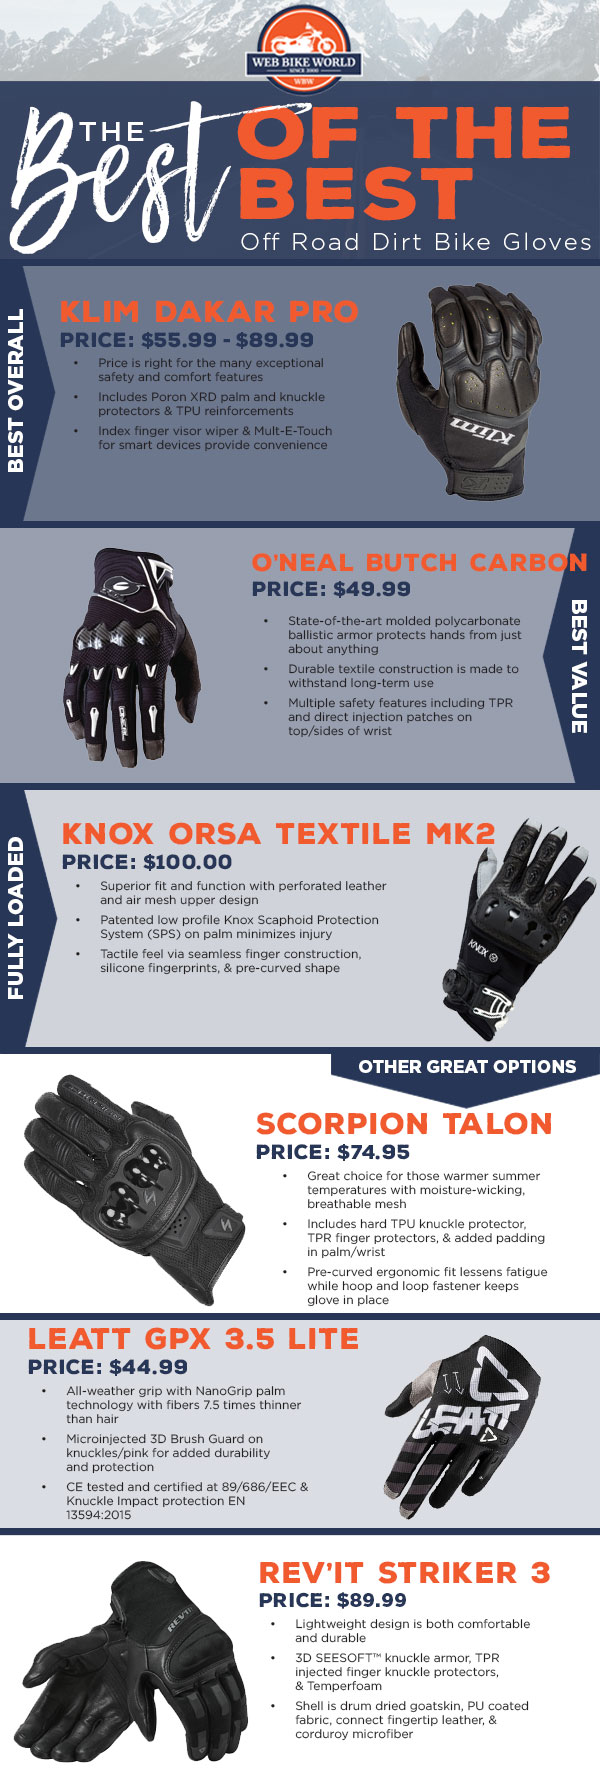 The Best Off-Road/Dirt Bike Gloves Infographic 2019